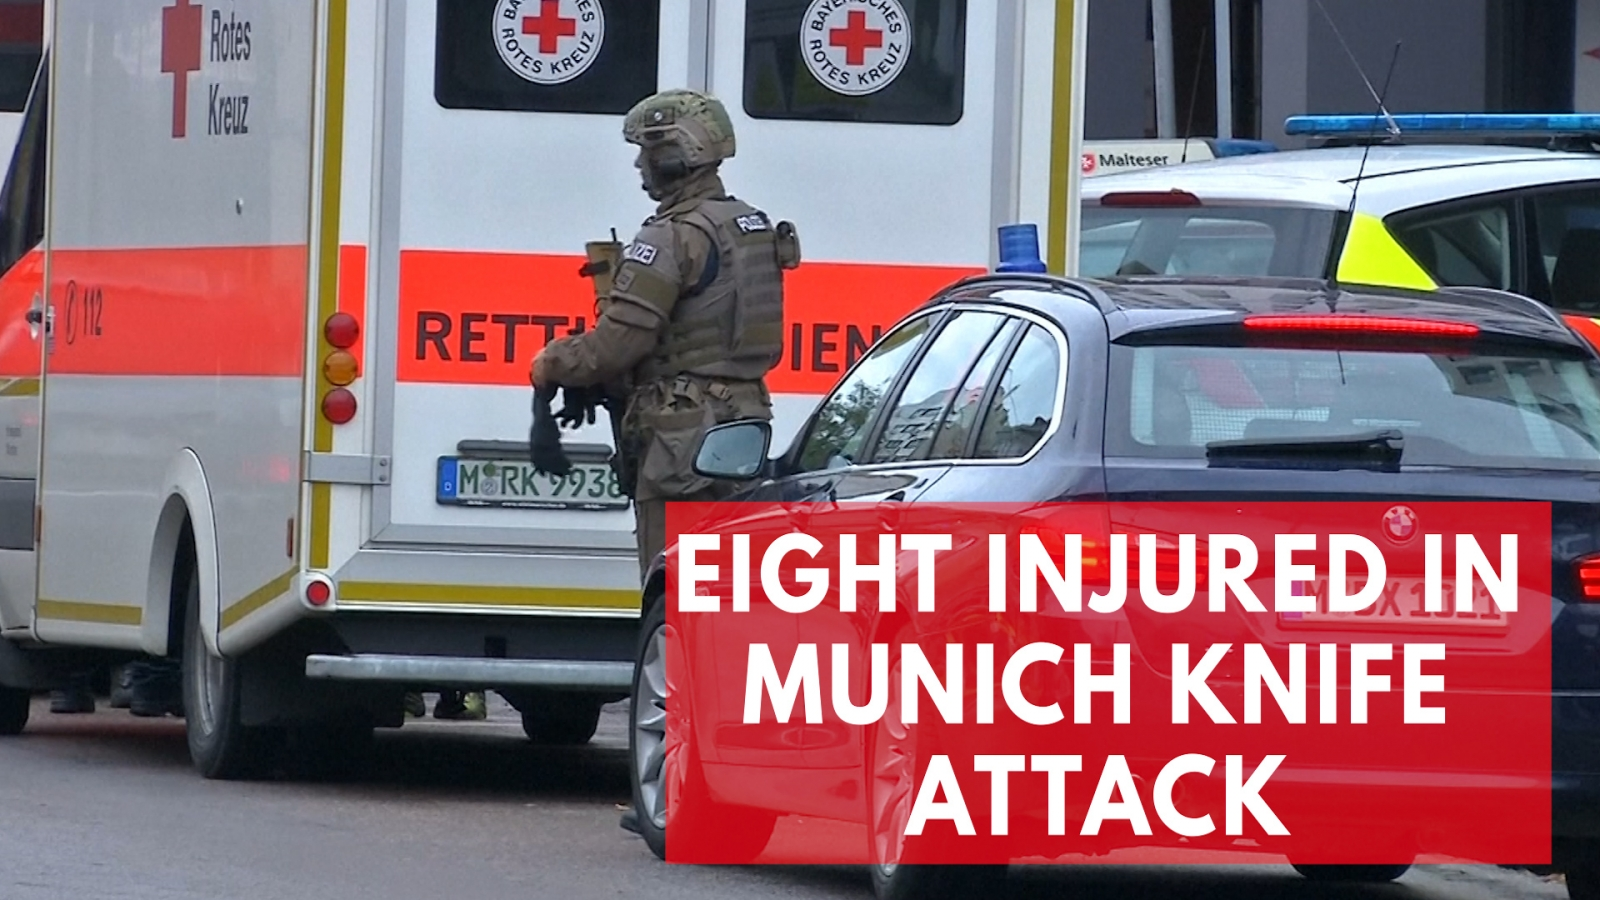 Suspect arrested after eight injured in Munich knife attack